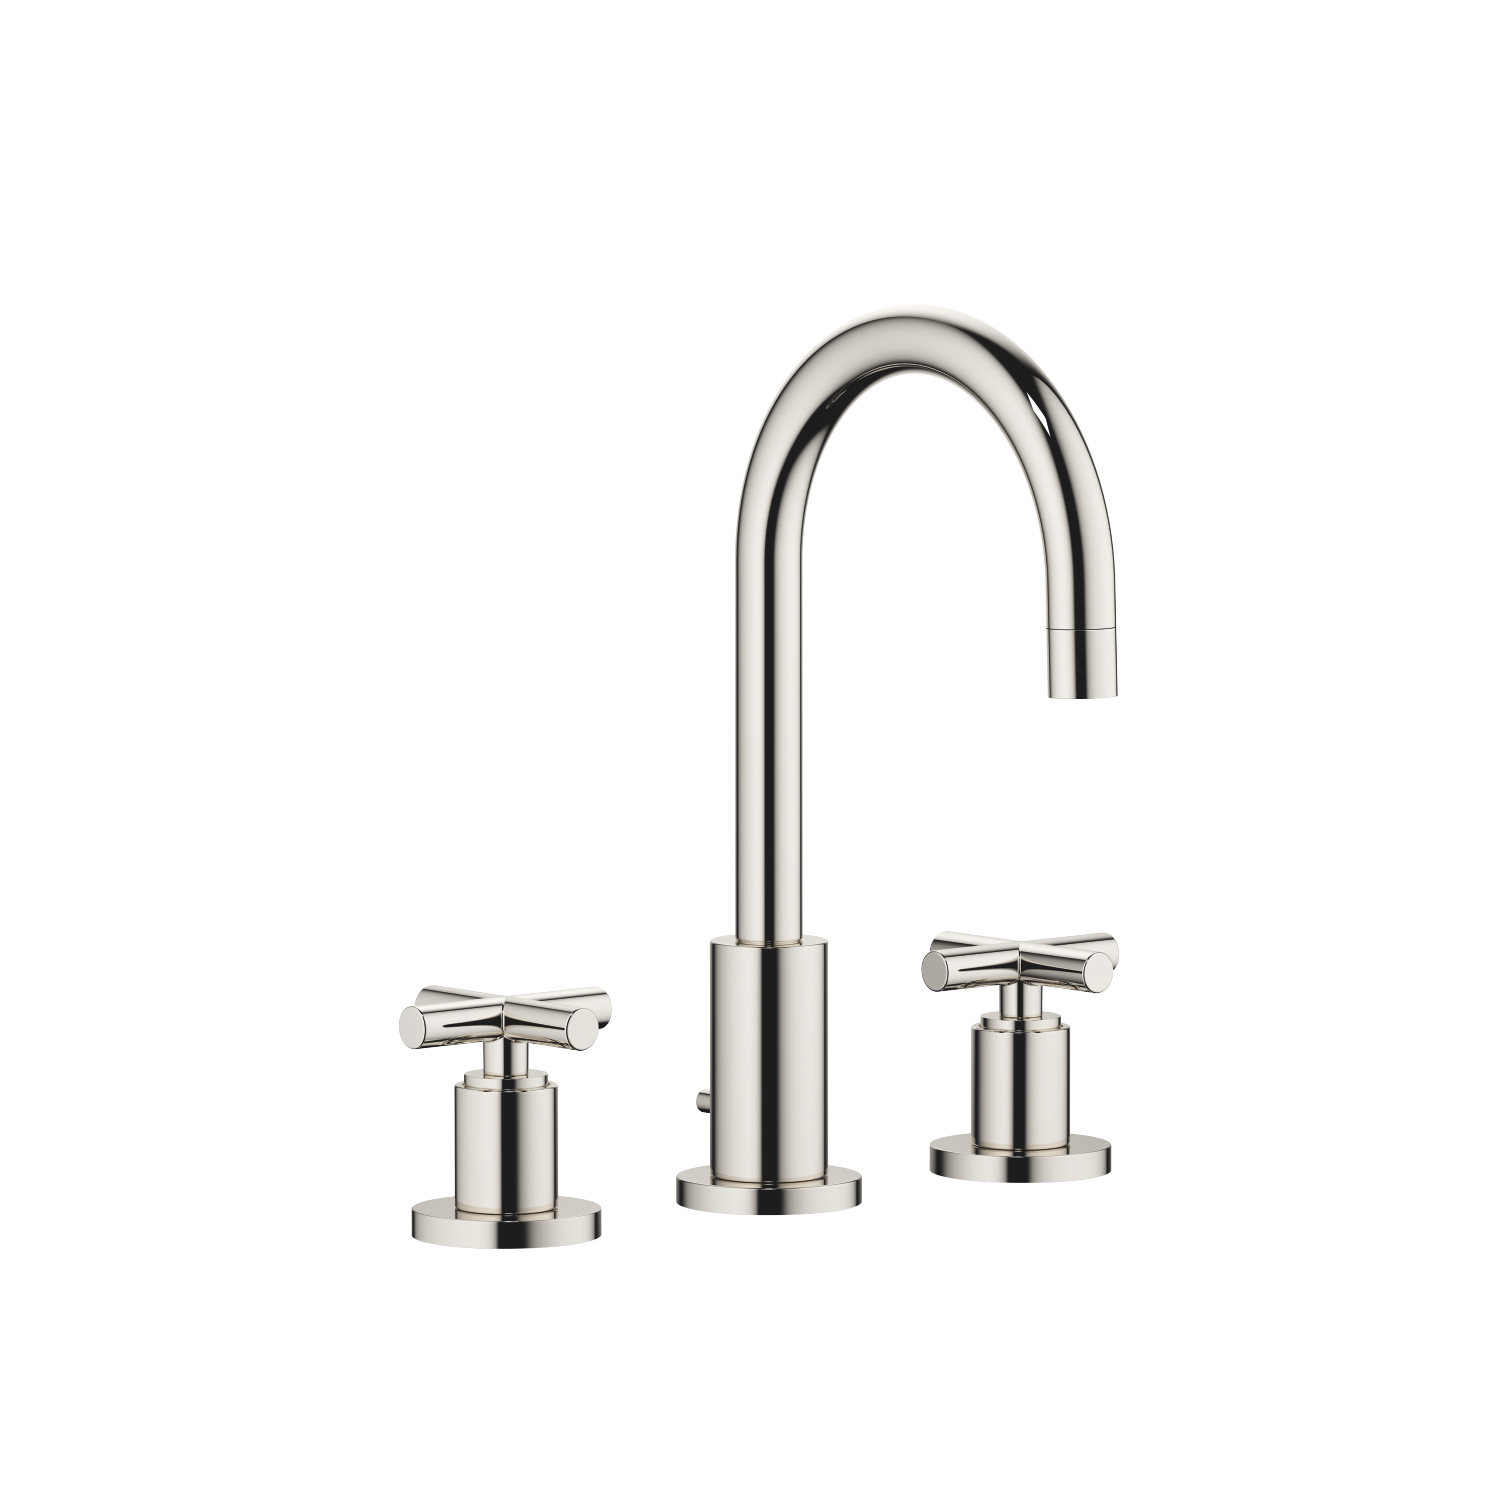 Three-hole basin mixer with pop-up waste - platinum - 20 710 892-08 0010